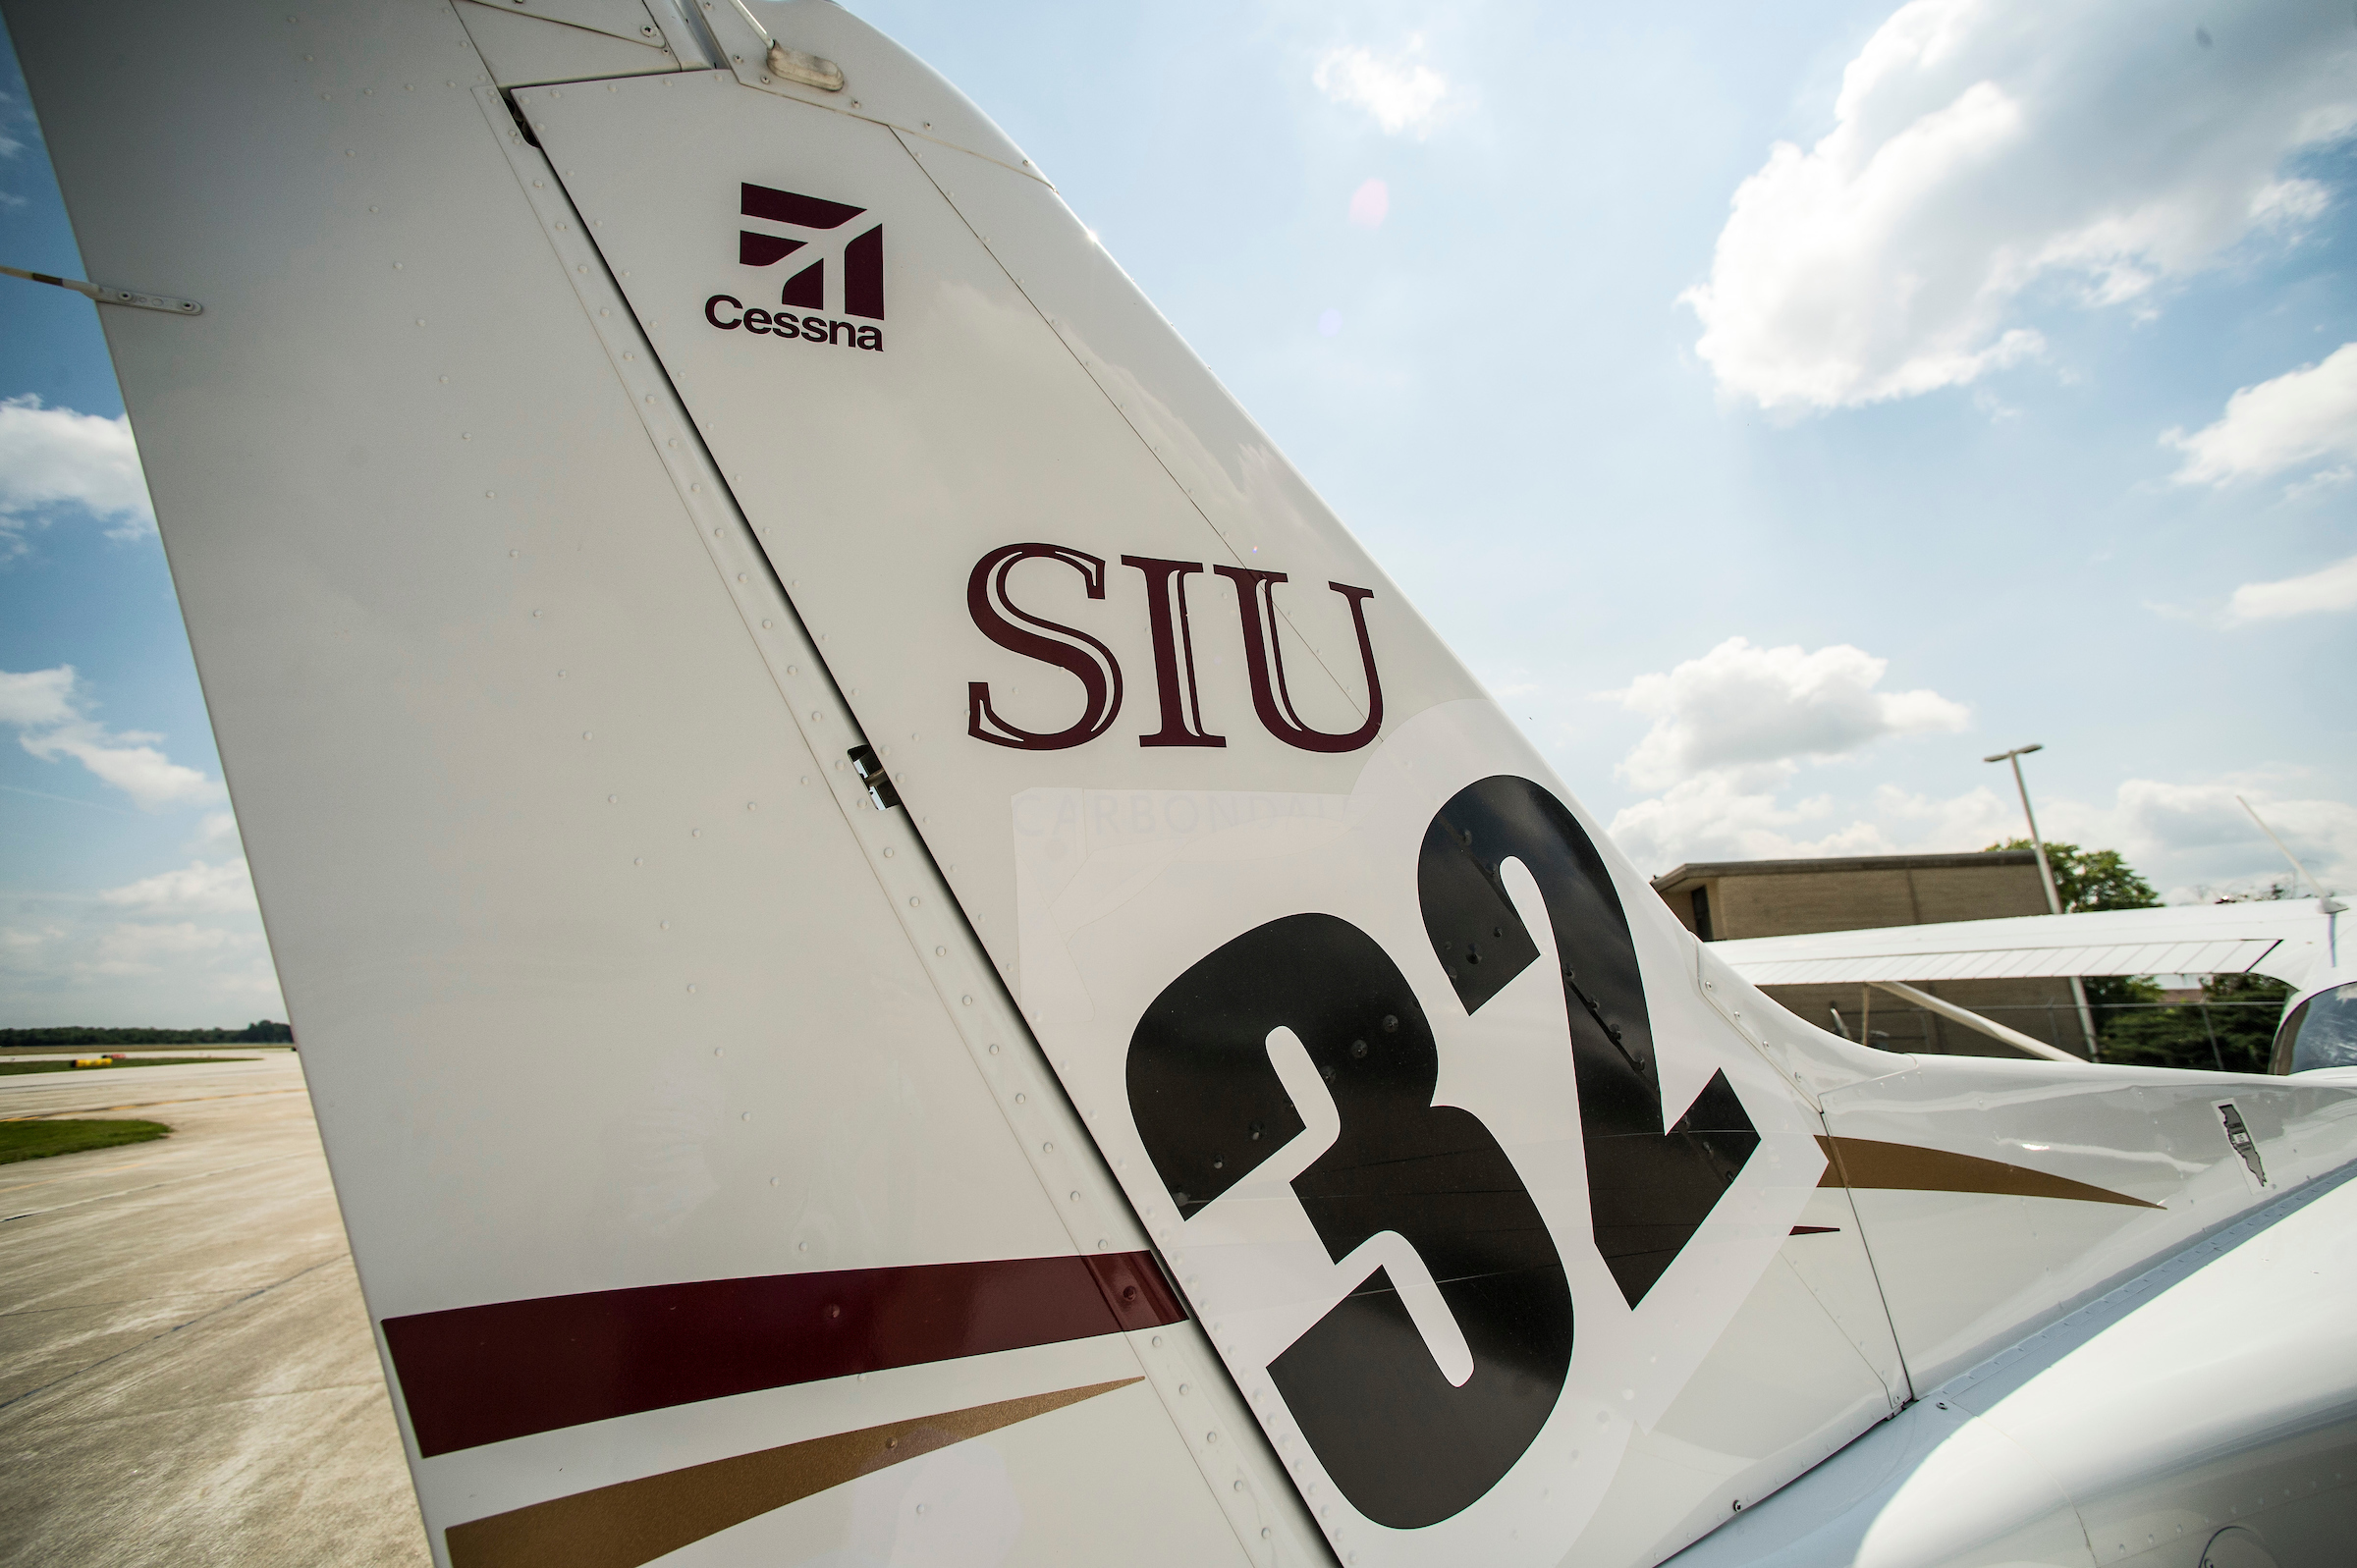 Happy Aviation Day to the SIU-C Aviation Students from Carbondale Self Storage!